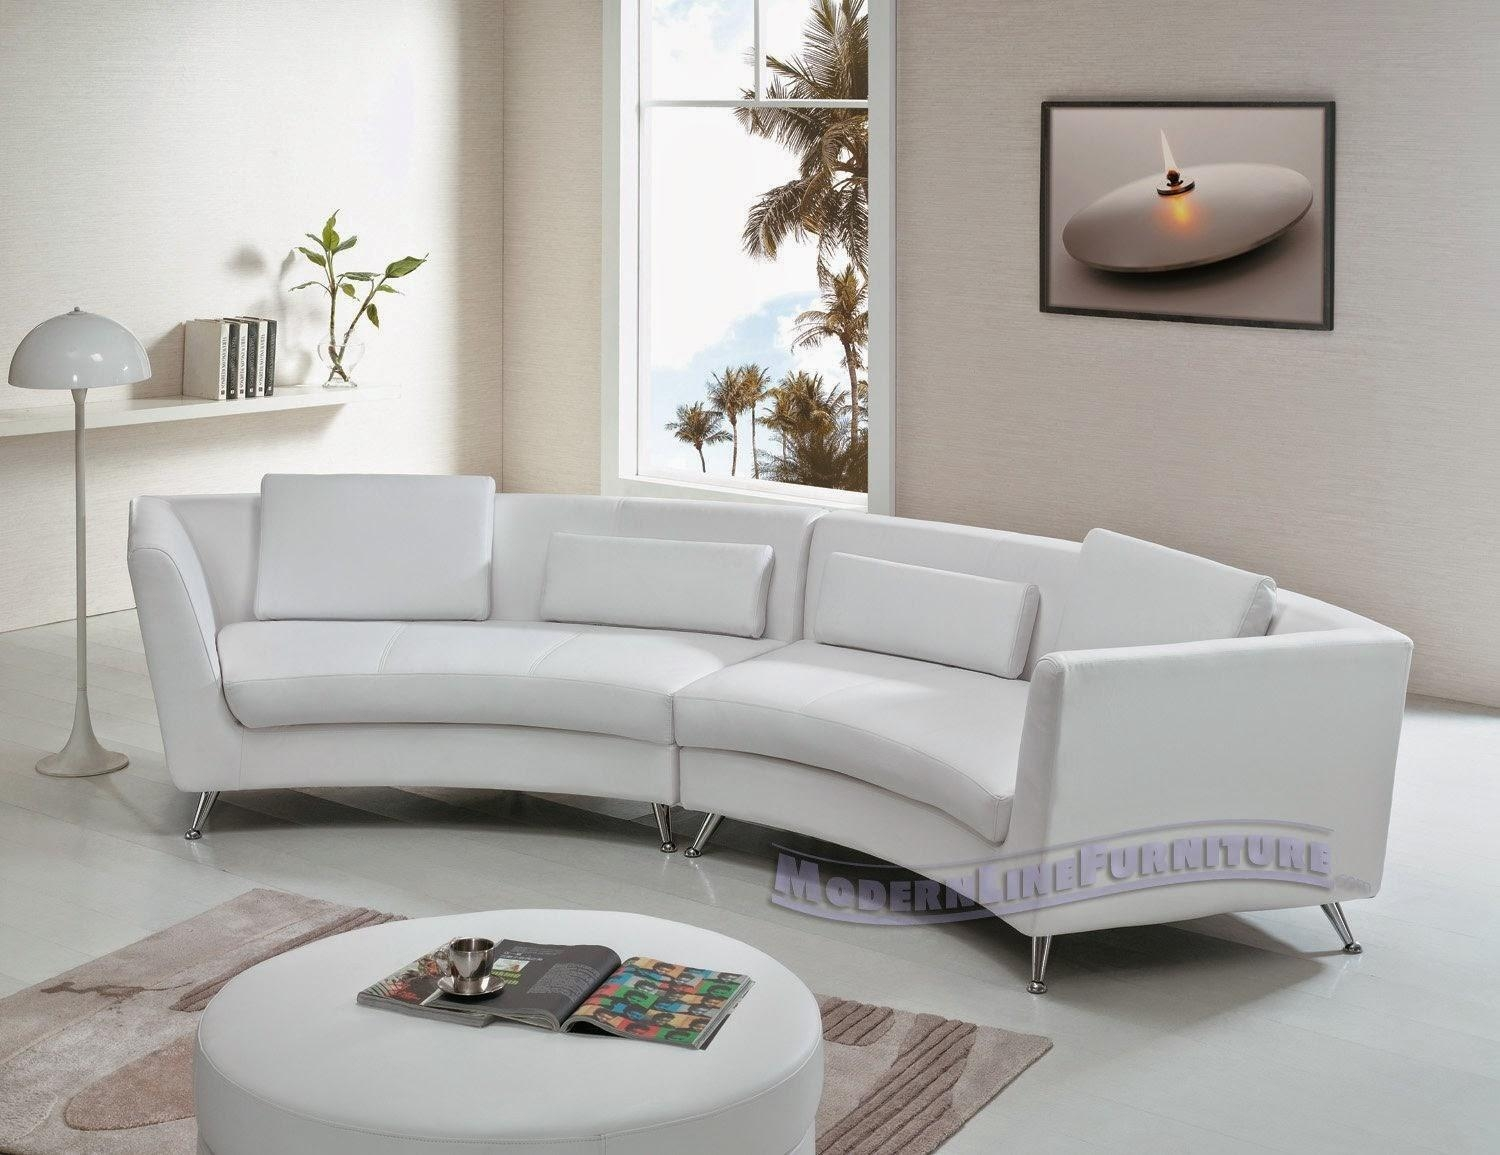 Sofa Curved: Curved Sofa For Bay Window With Sofas For Bay Window (View 3 of 20)